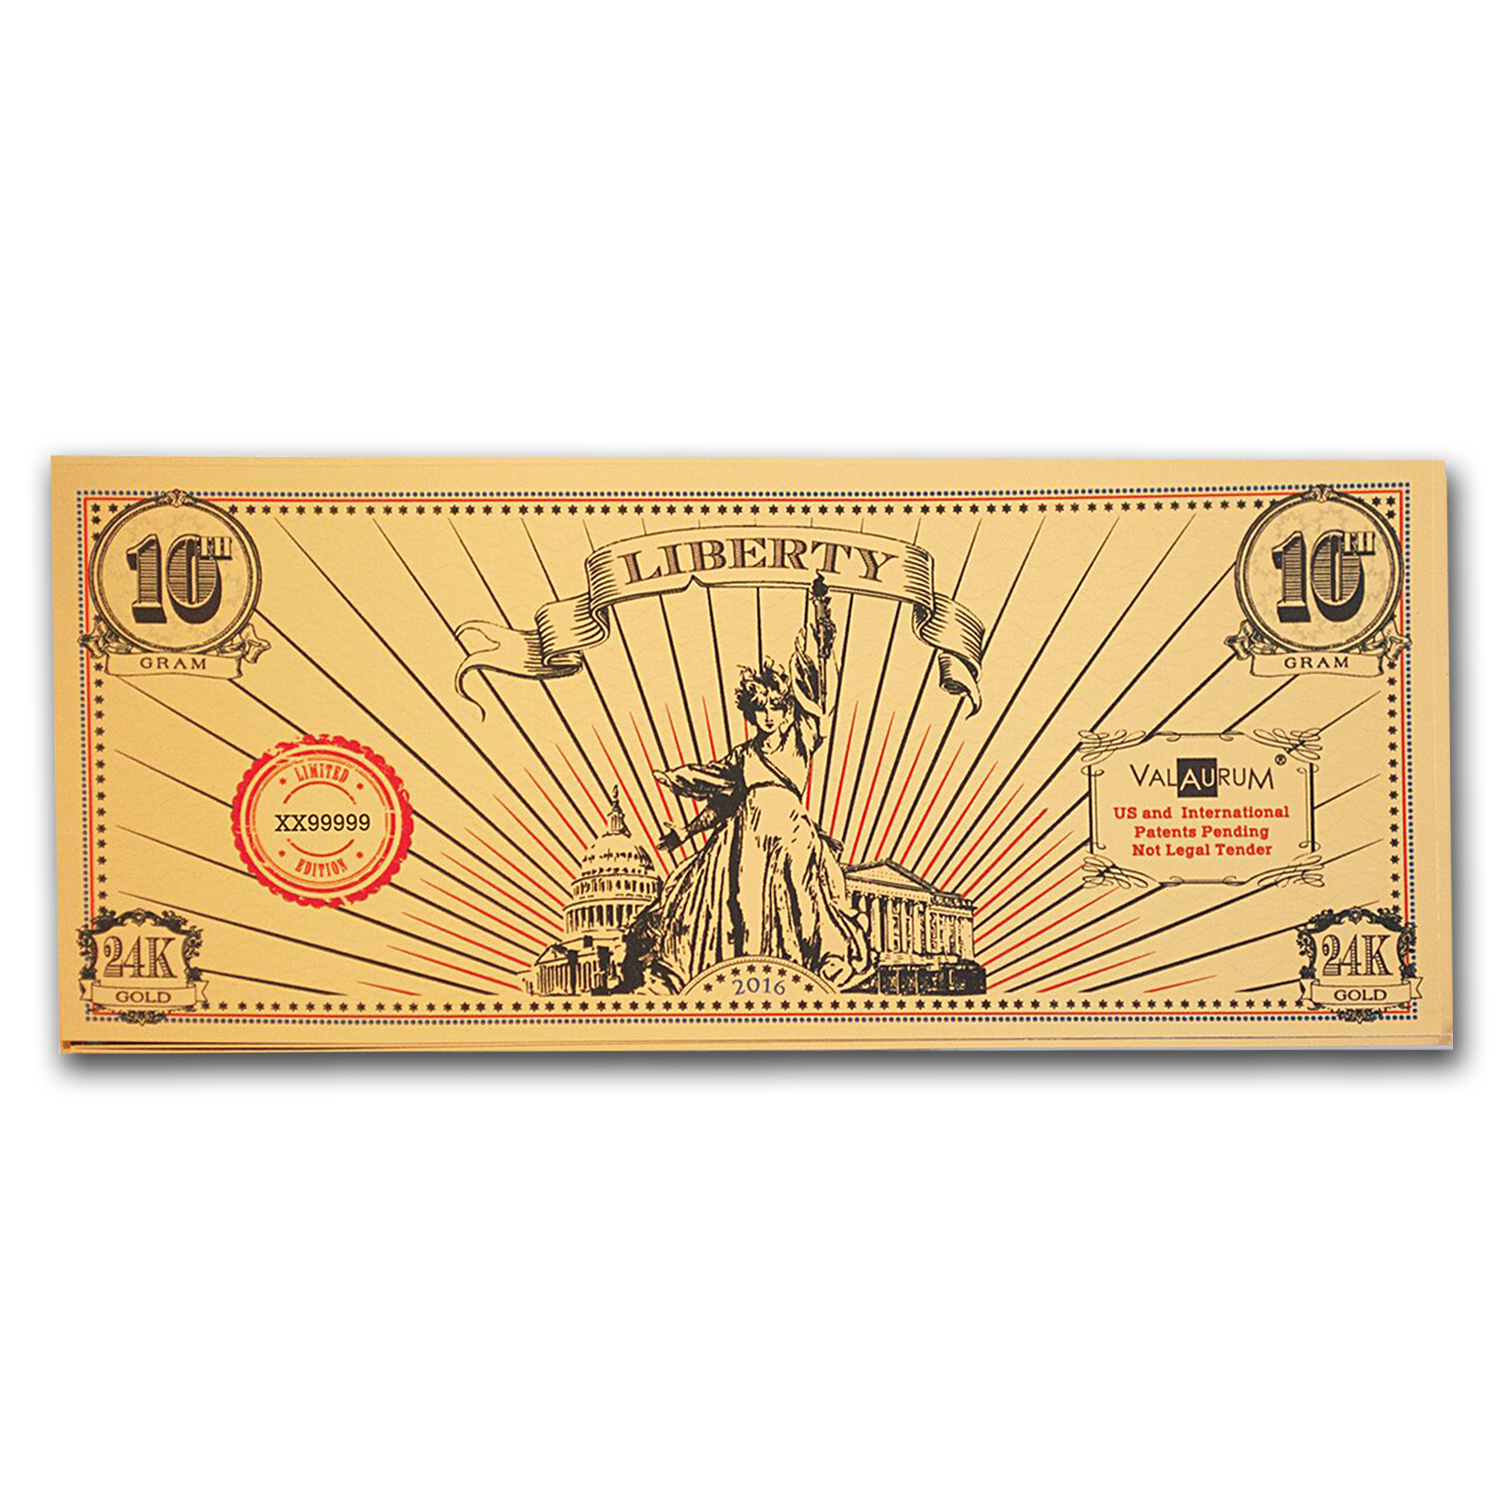 1/10 gram Gold Note - Valaurum (Lady Liberty Design, 24K)